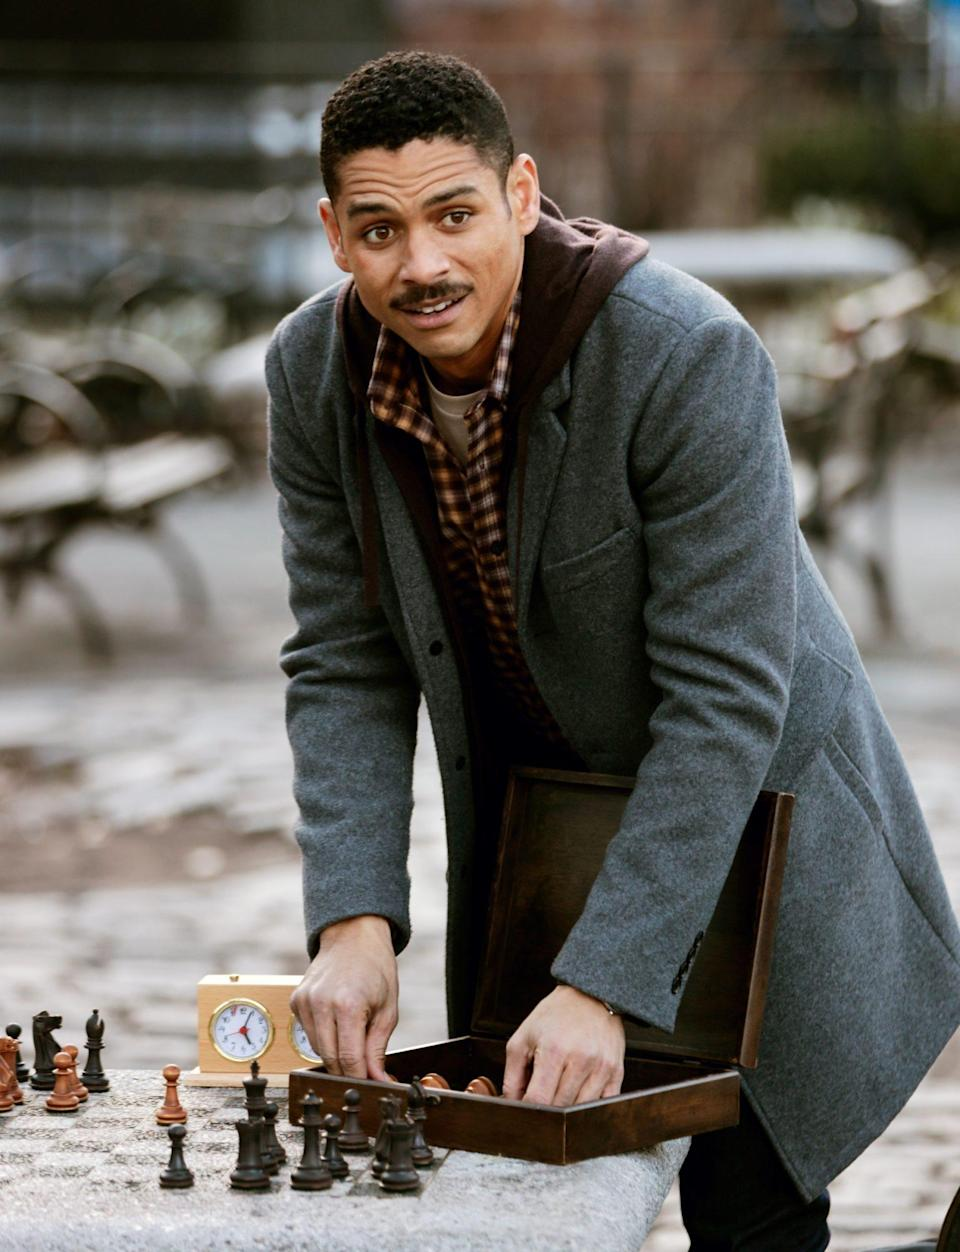 <p>Charlie Barnett shoots a chess scene for Natasha Lyonne's<em> Russian Doll</em> on Wednesday in N.Y.C.</p>